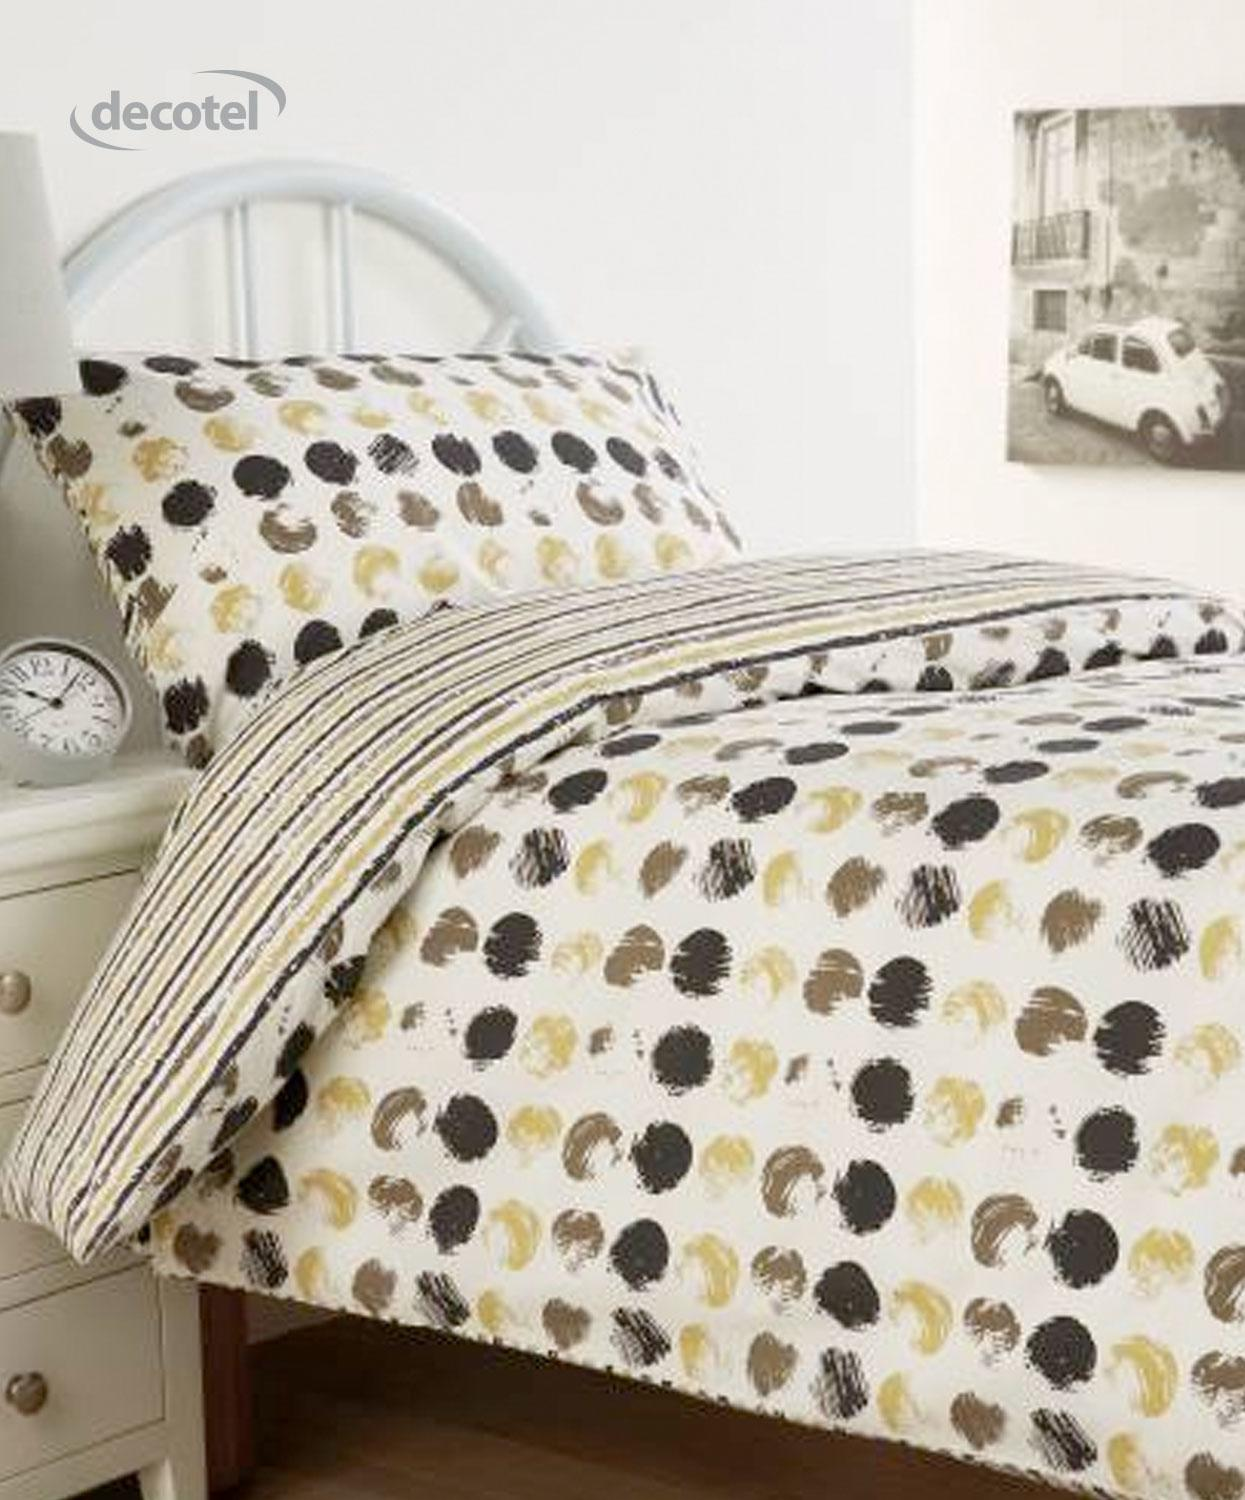 Harrow duvet cover in grey